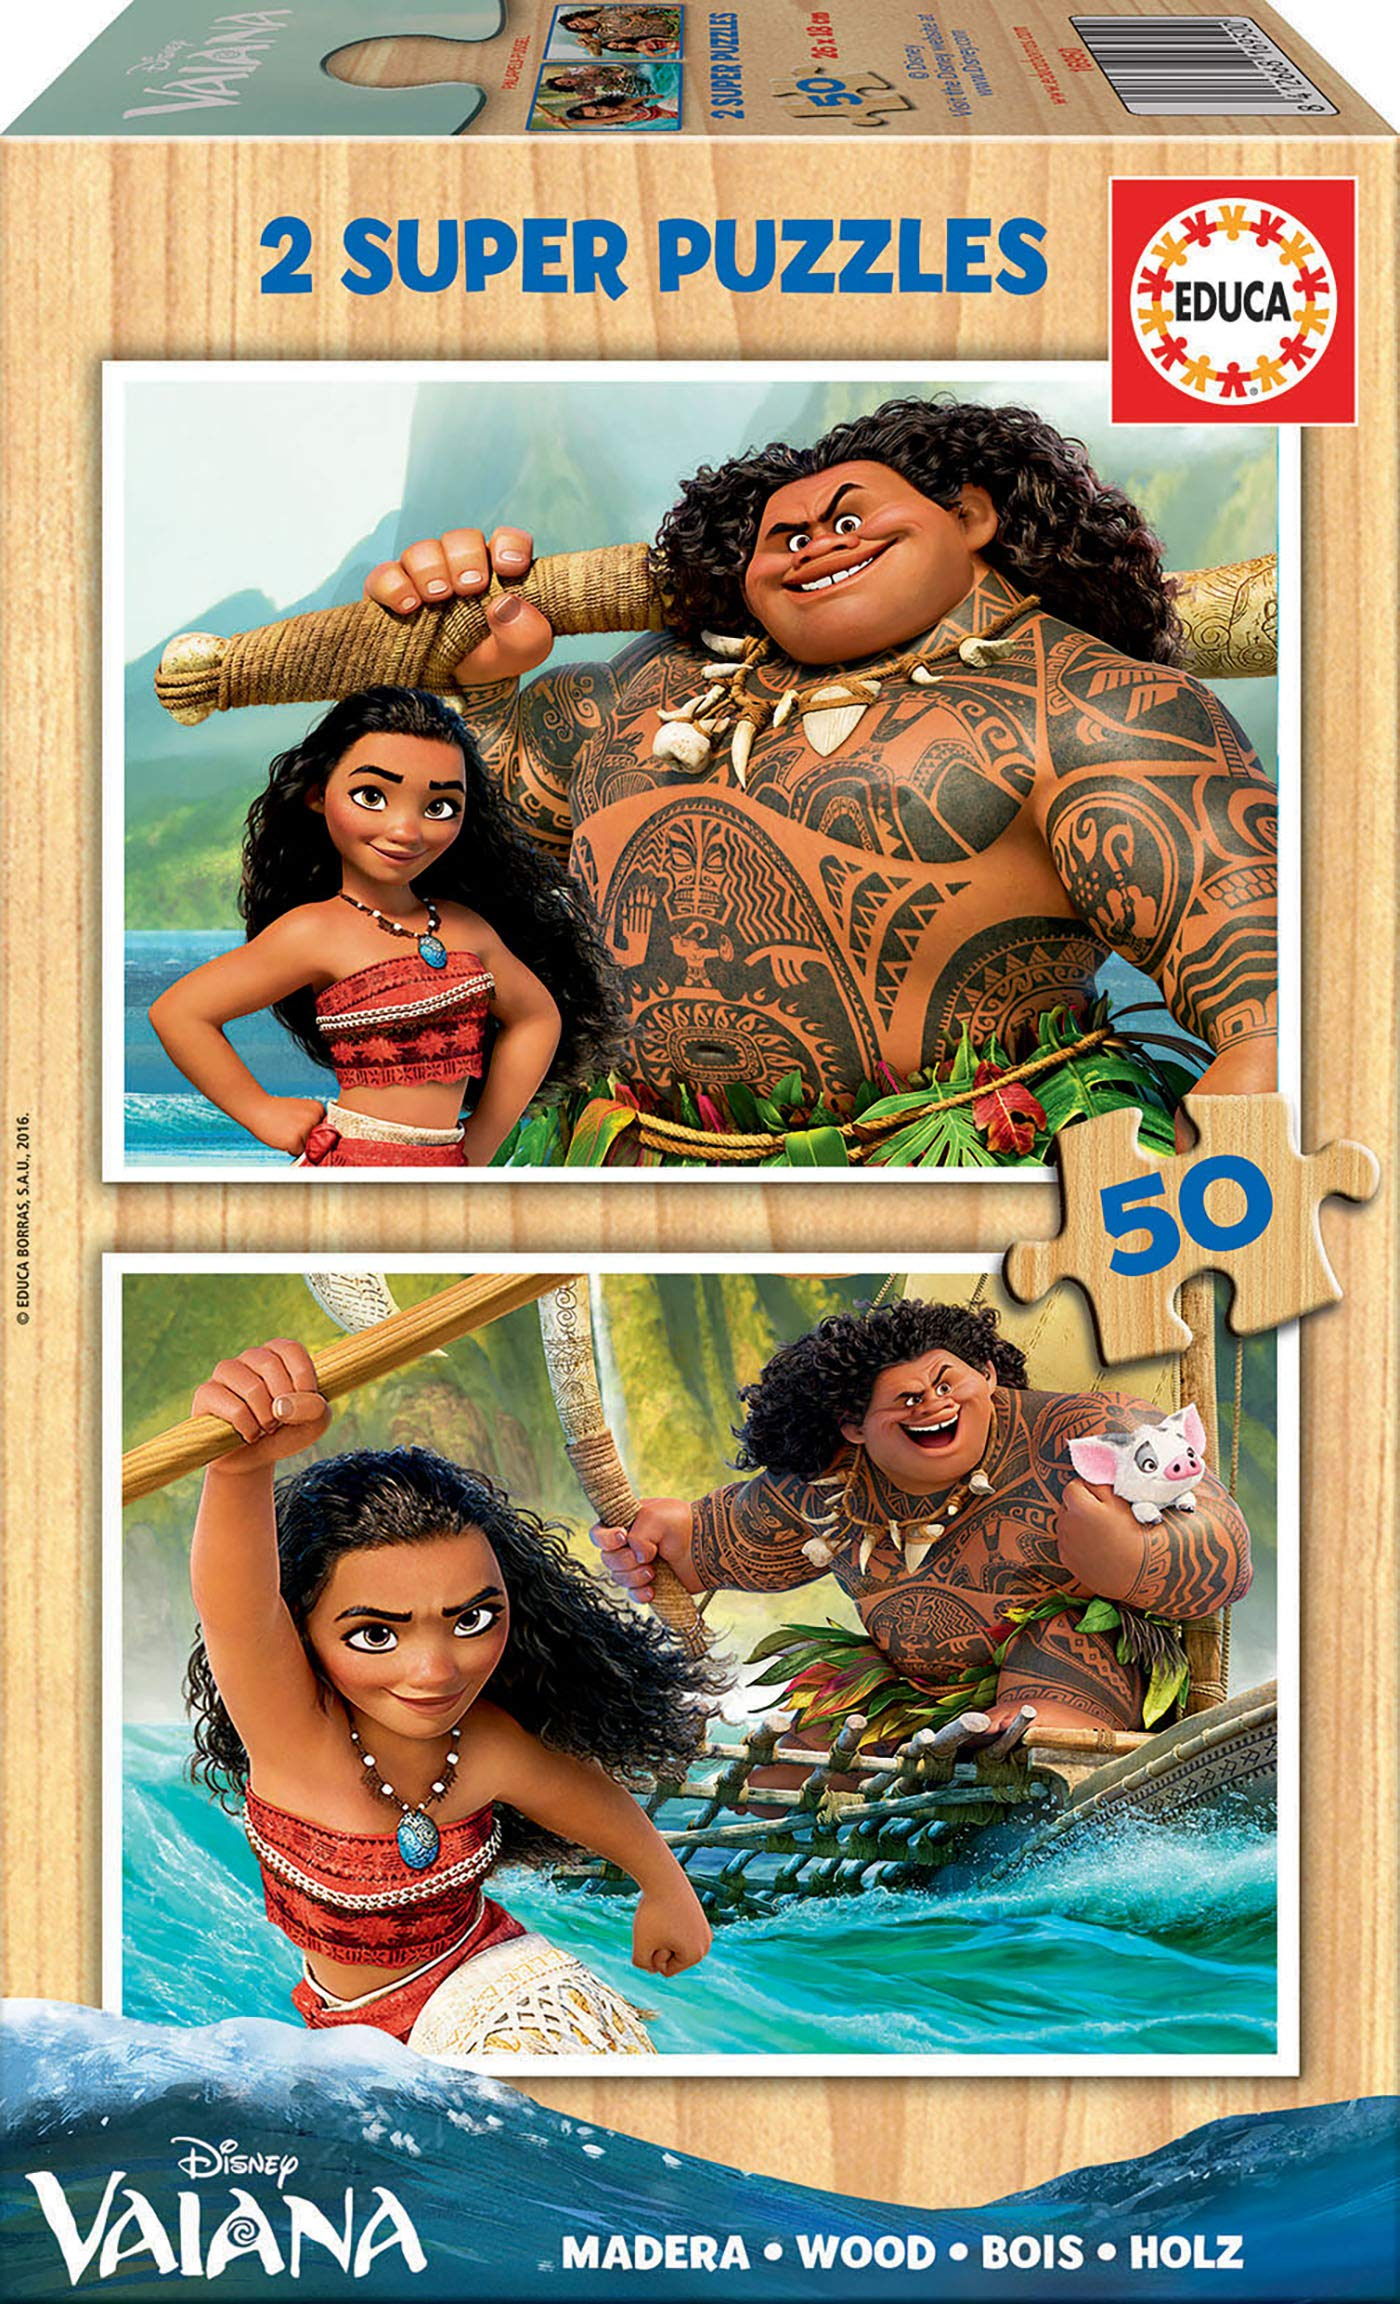 Educa Borrás – 16950.0 Vaiana [Moana] puzzles – 2 x 50 Pieces